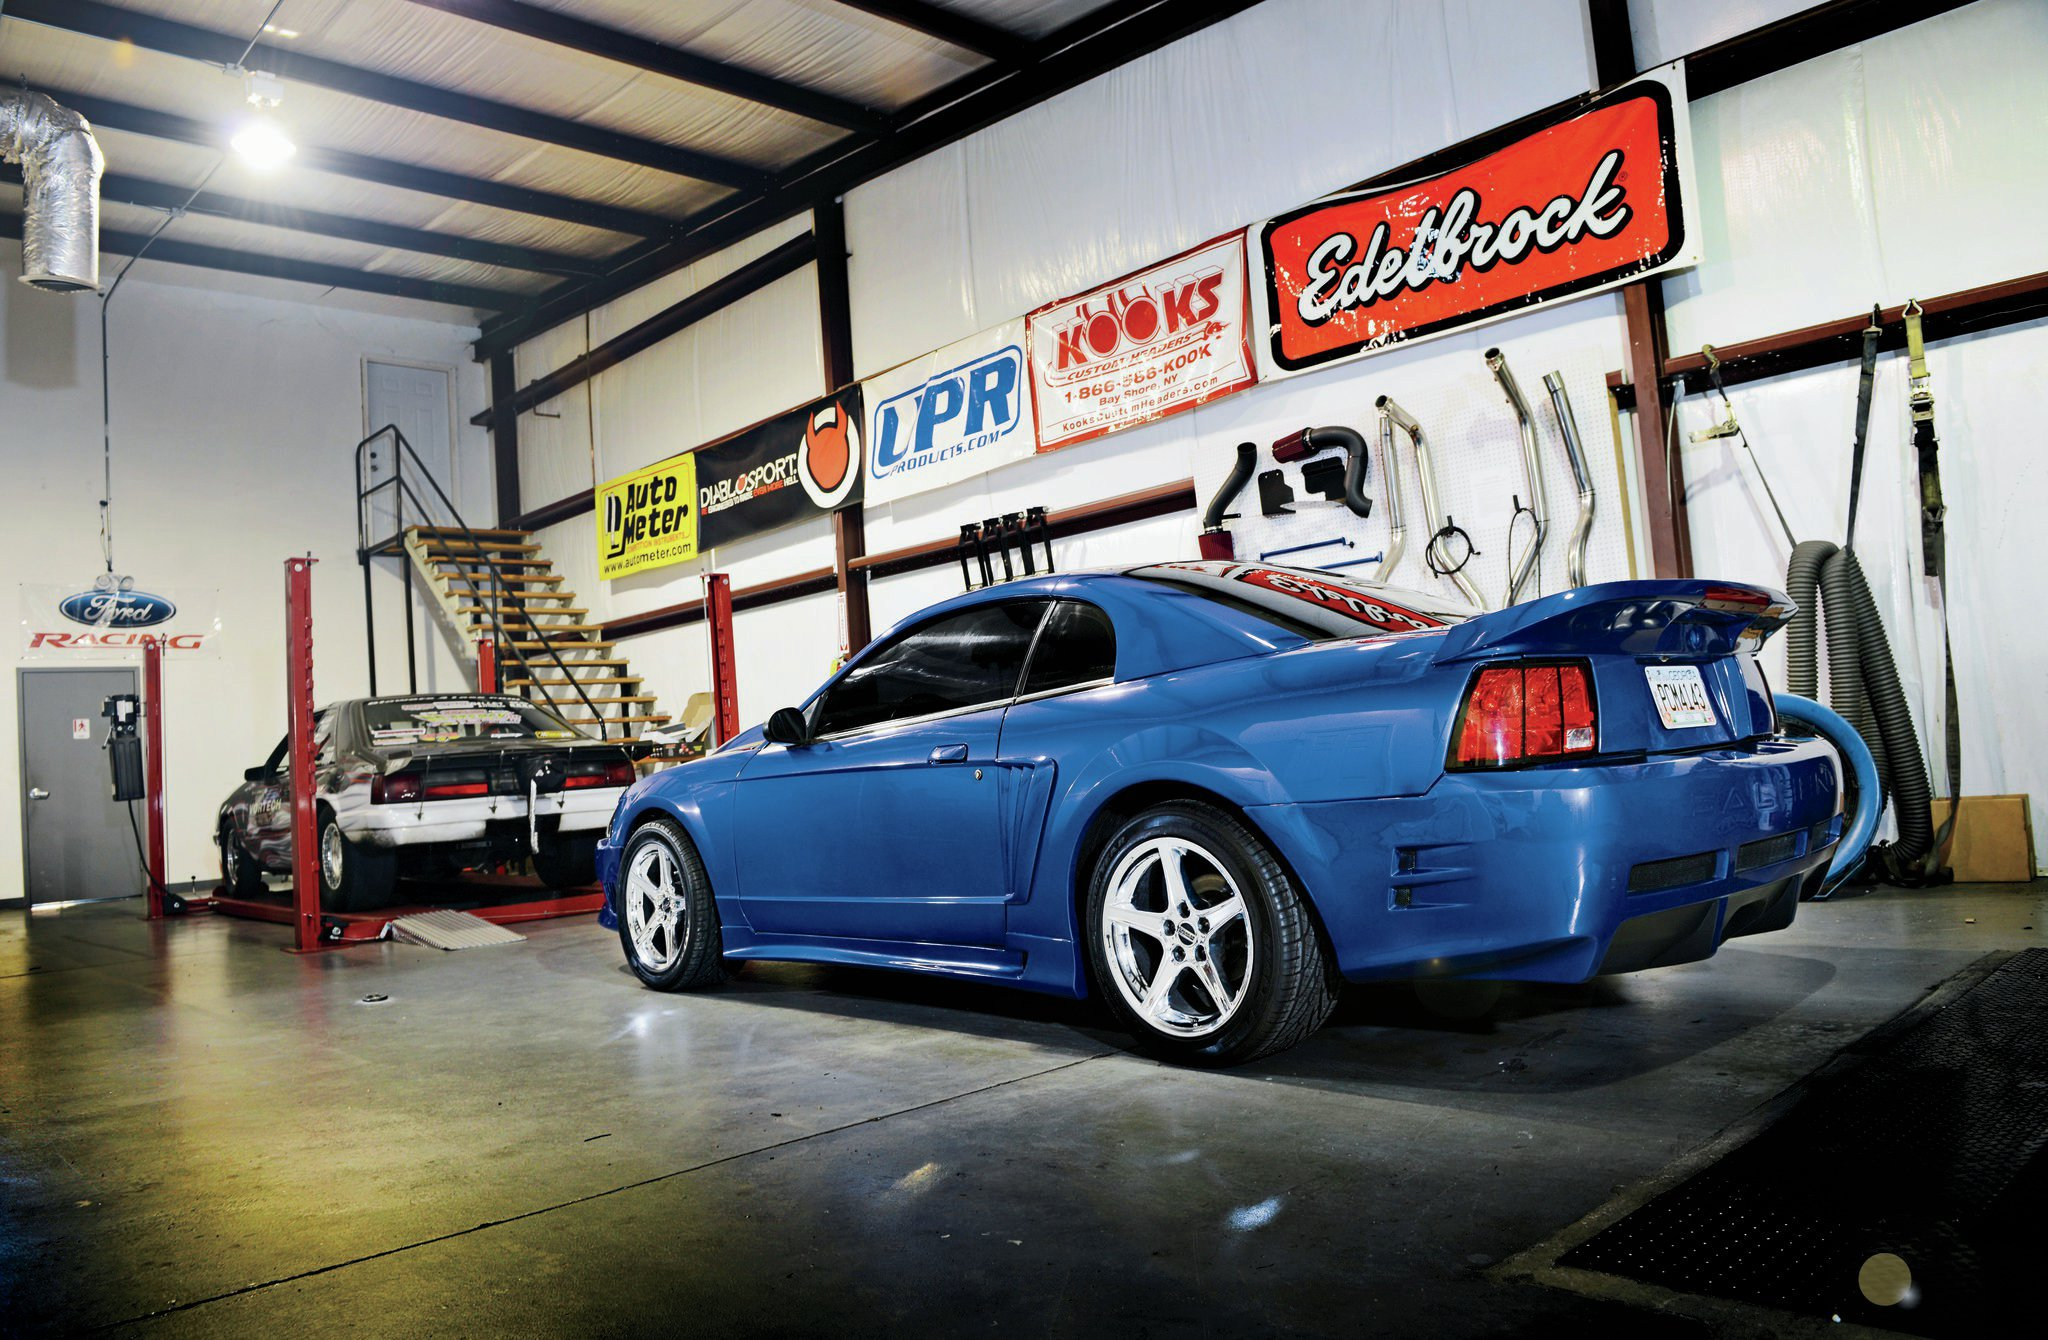 2002 Ford Mustang Rear Side View